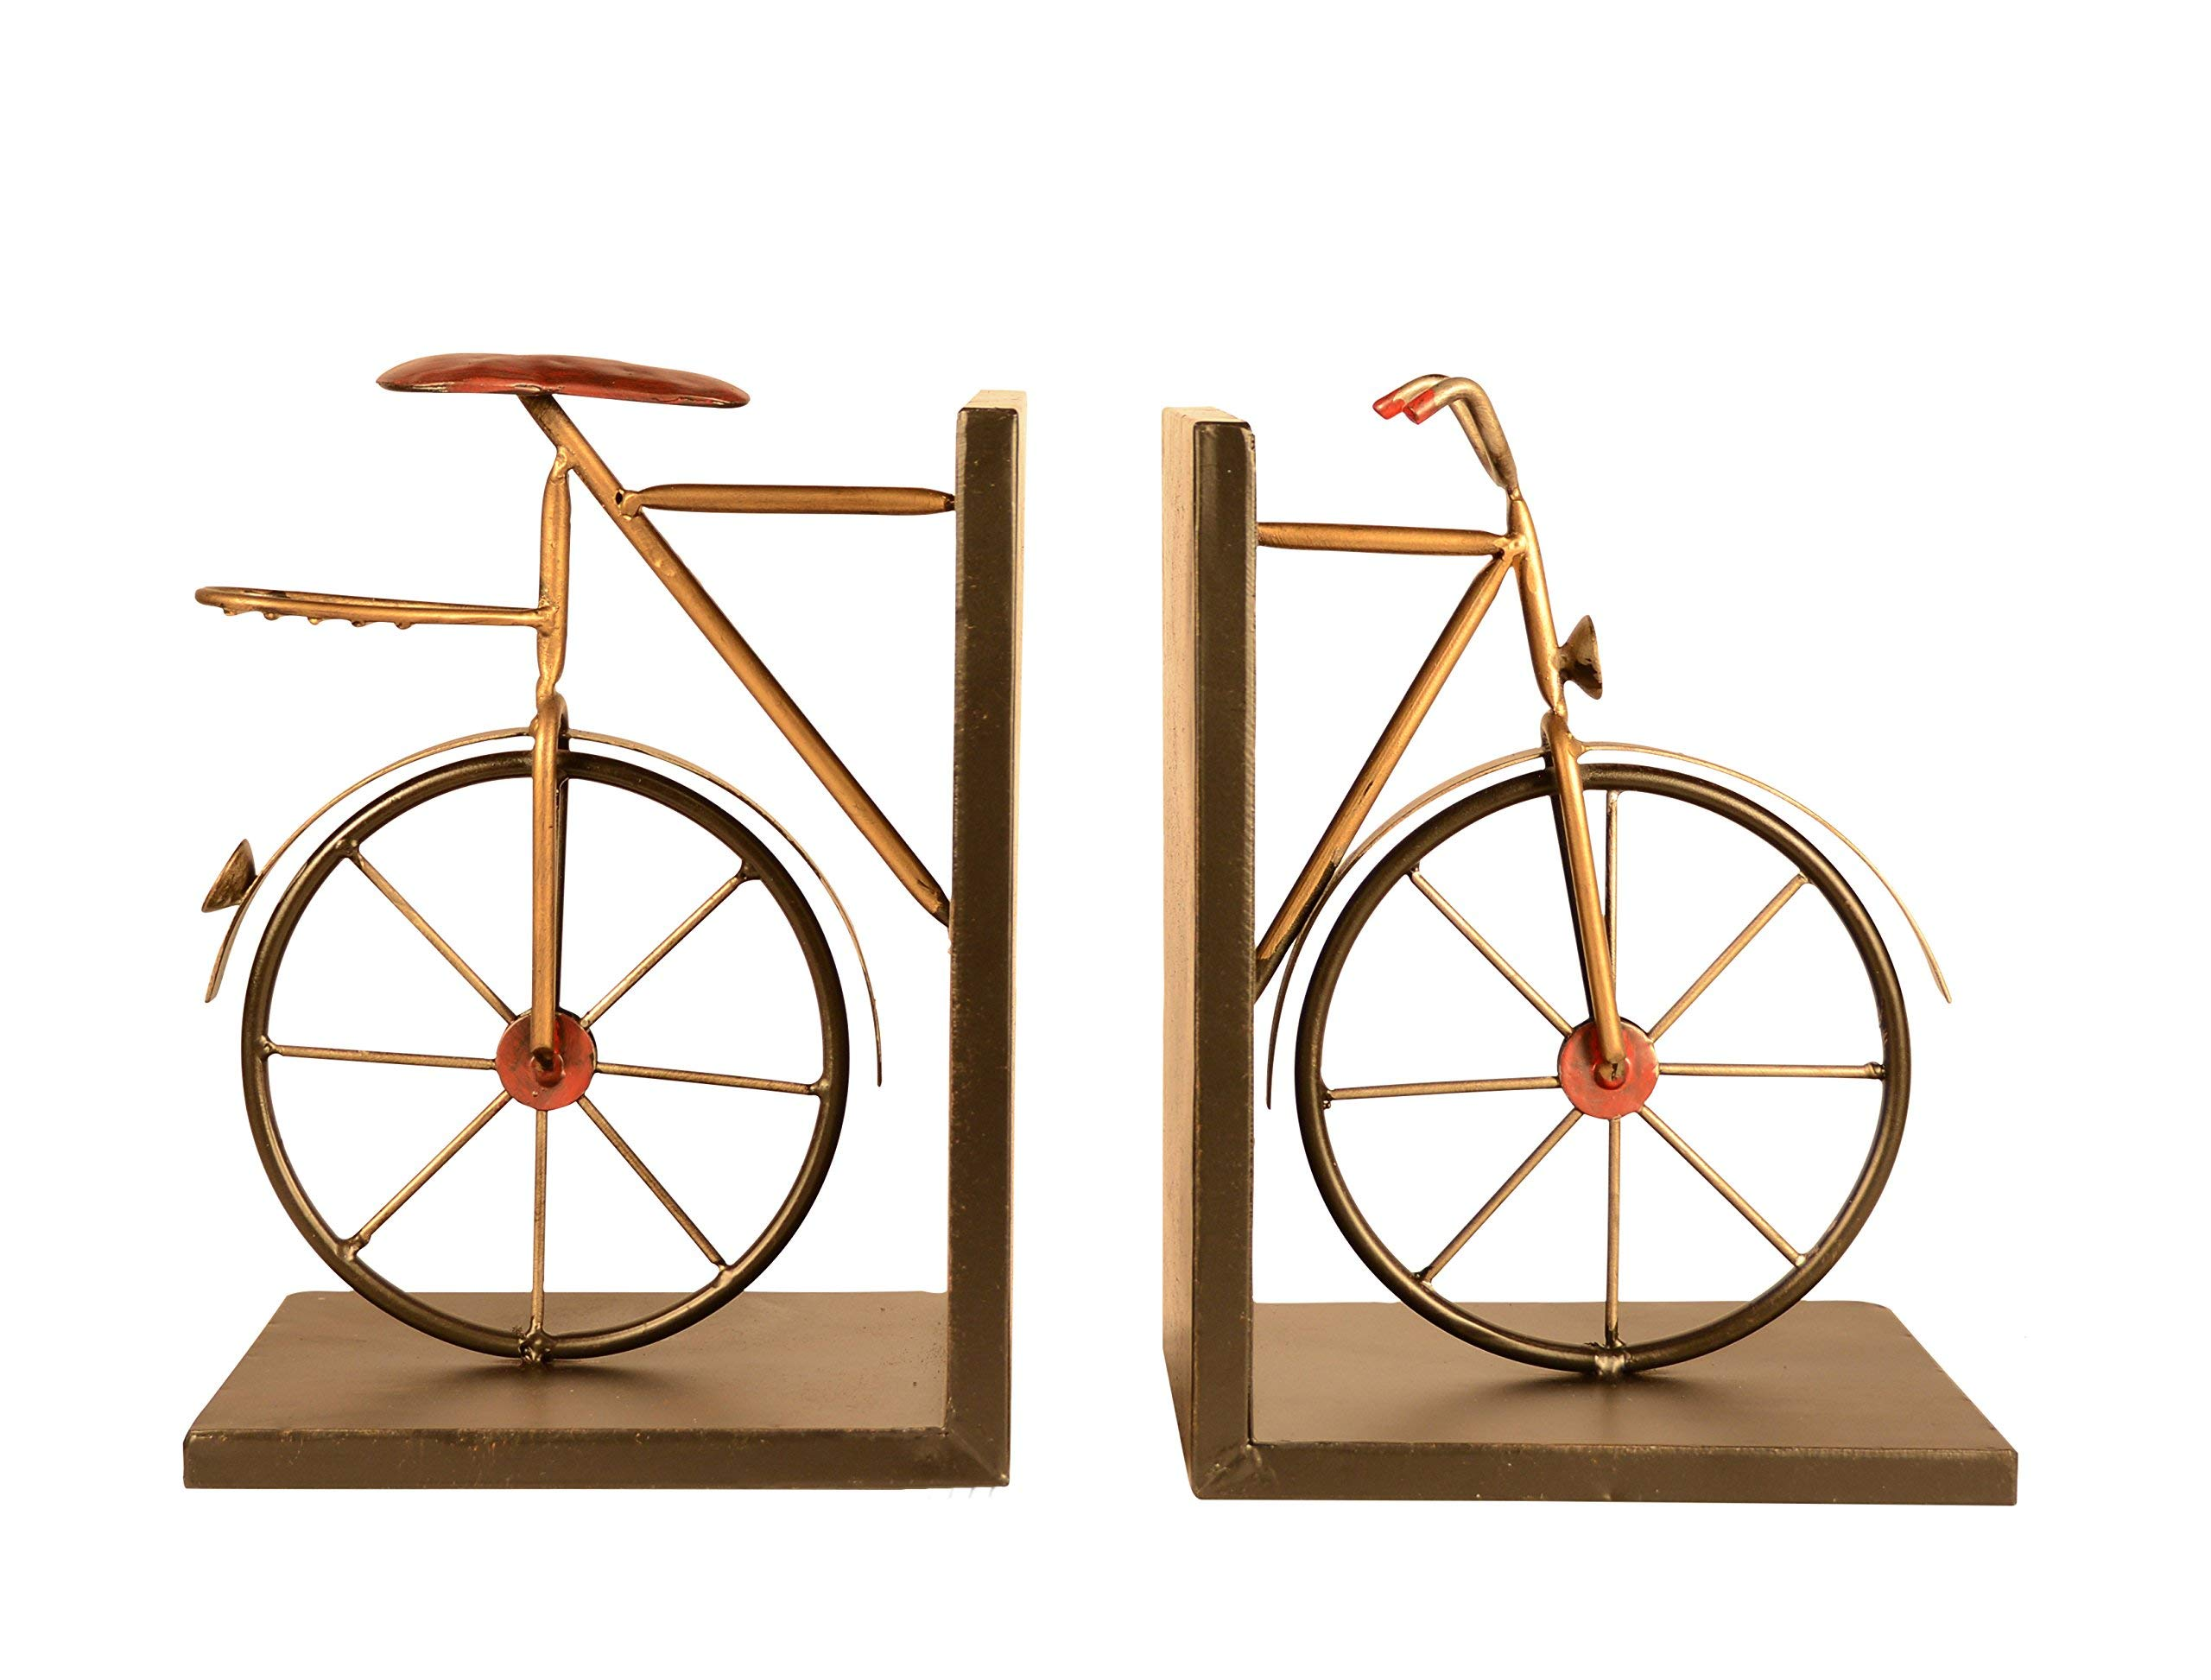 Ten Waterloo Bicycle Bookends Pair in Metal, 8 inches High x 6 inches Wide Each Piece, Cycling Bookends by Ten Waterloo